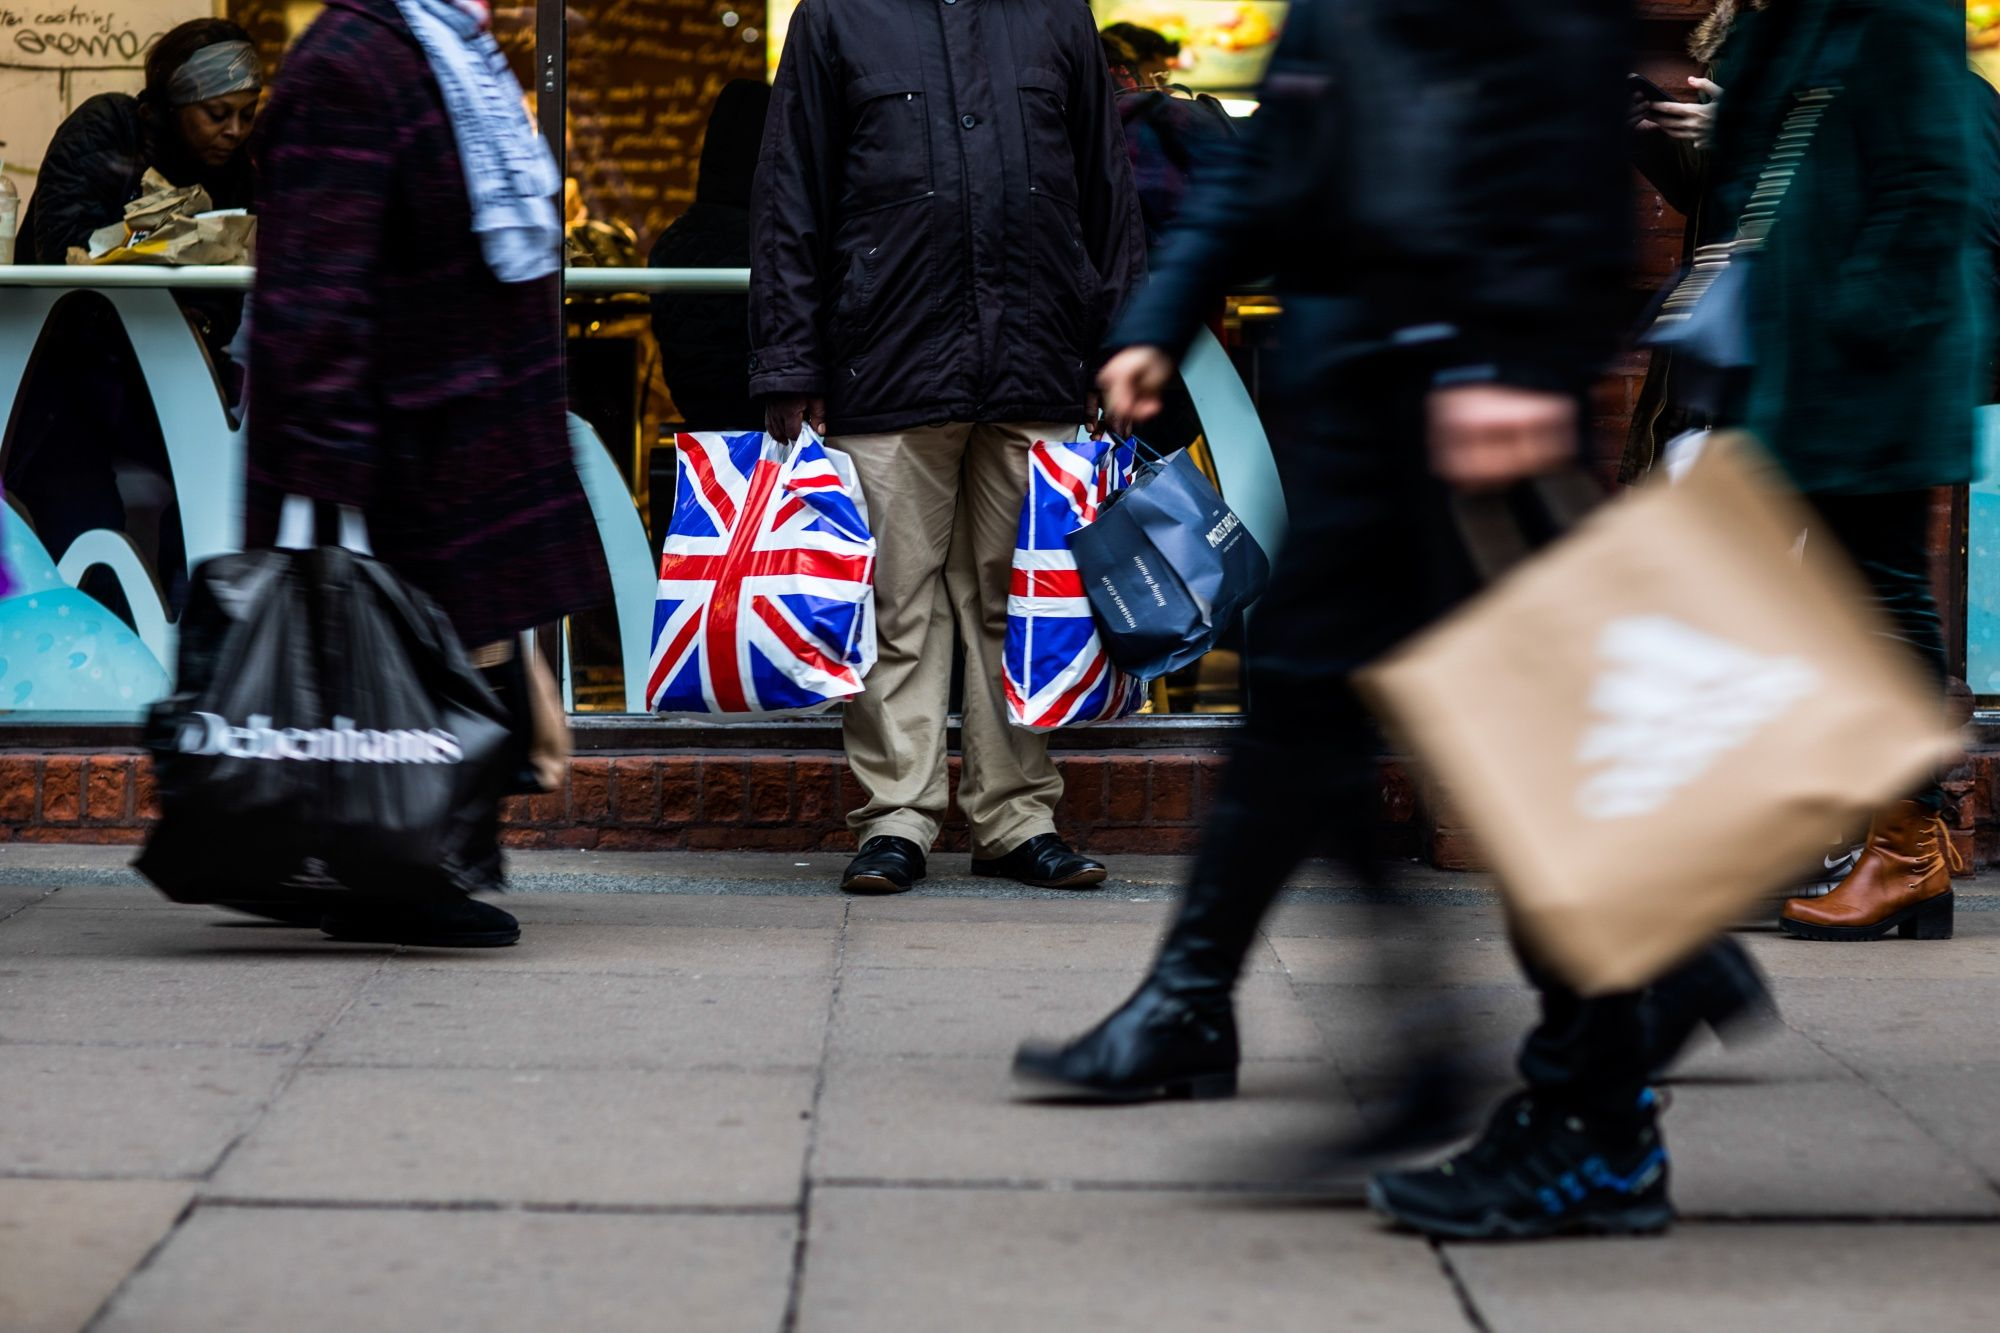 A pedestrian holds a Union Flag branded shopping bag on Oxford Street in London, U.K., on Tuesday, Dec. 4, 2018.